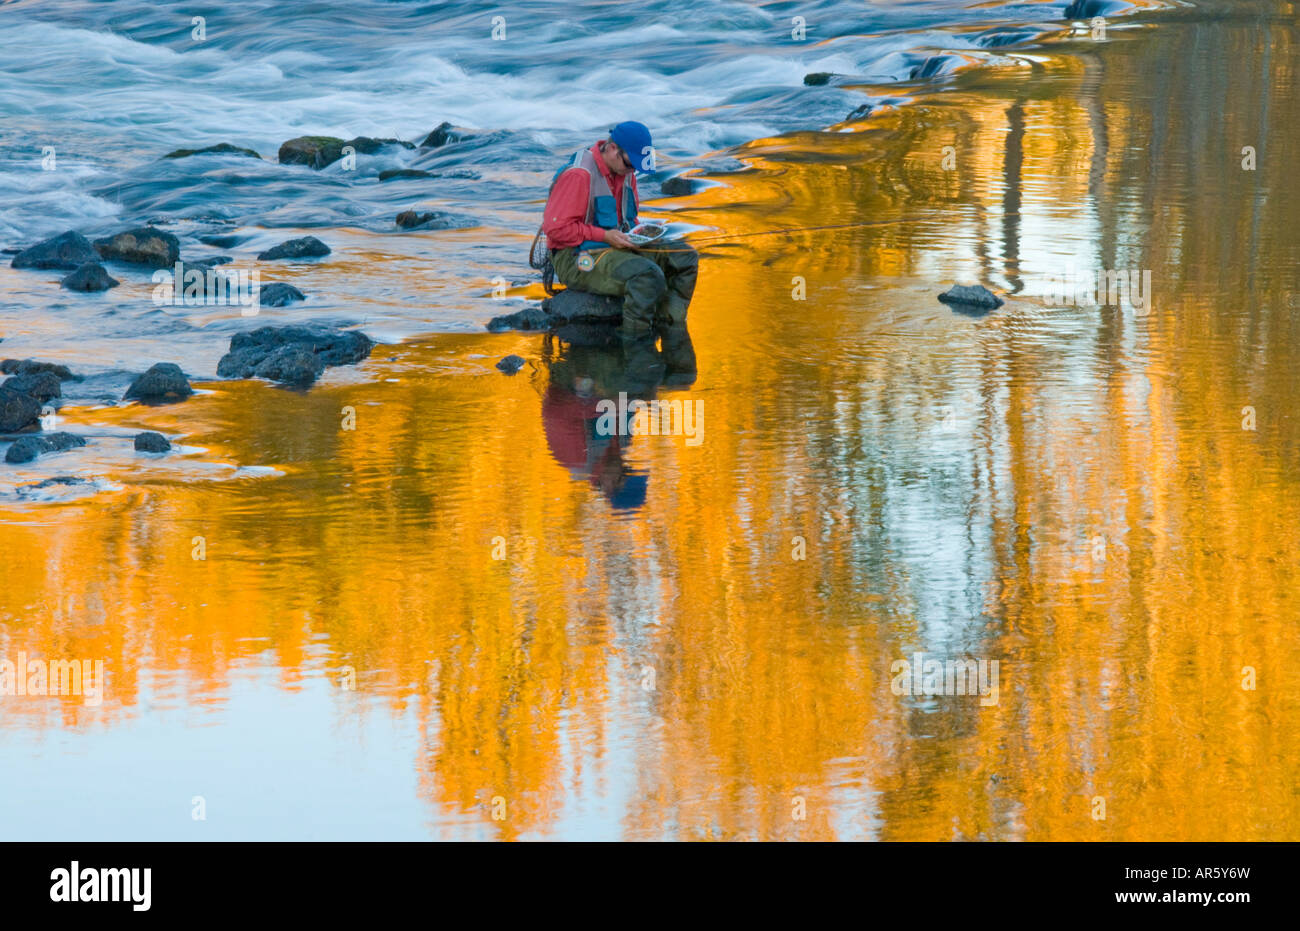 Idaho City of Boise Fly fishernman fishing on the Boise River in the fall - Stock Image